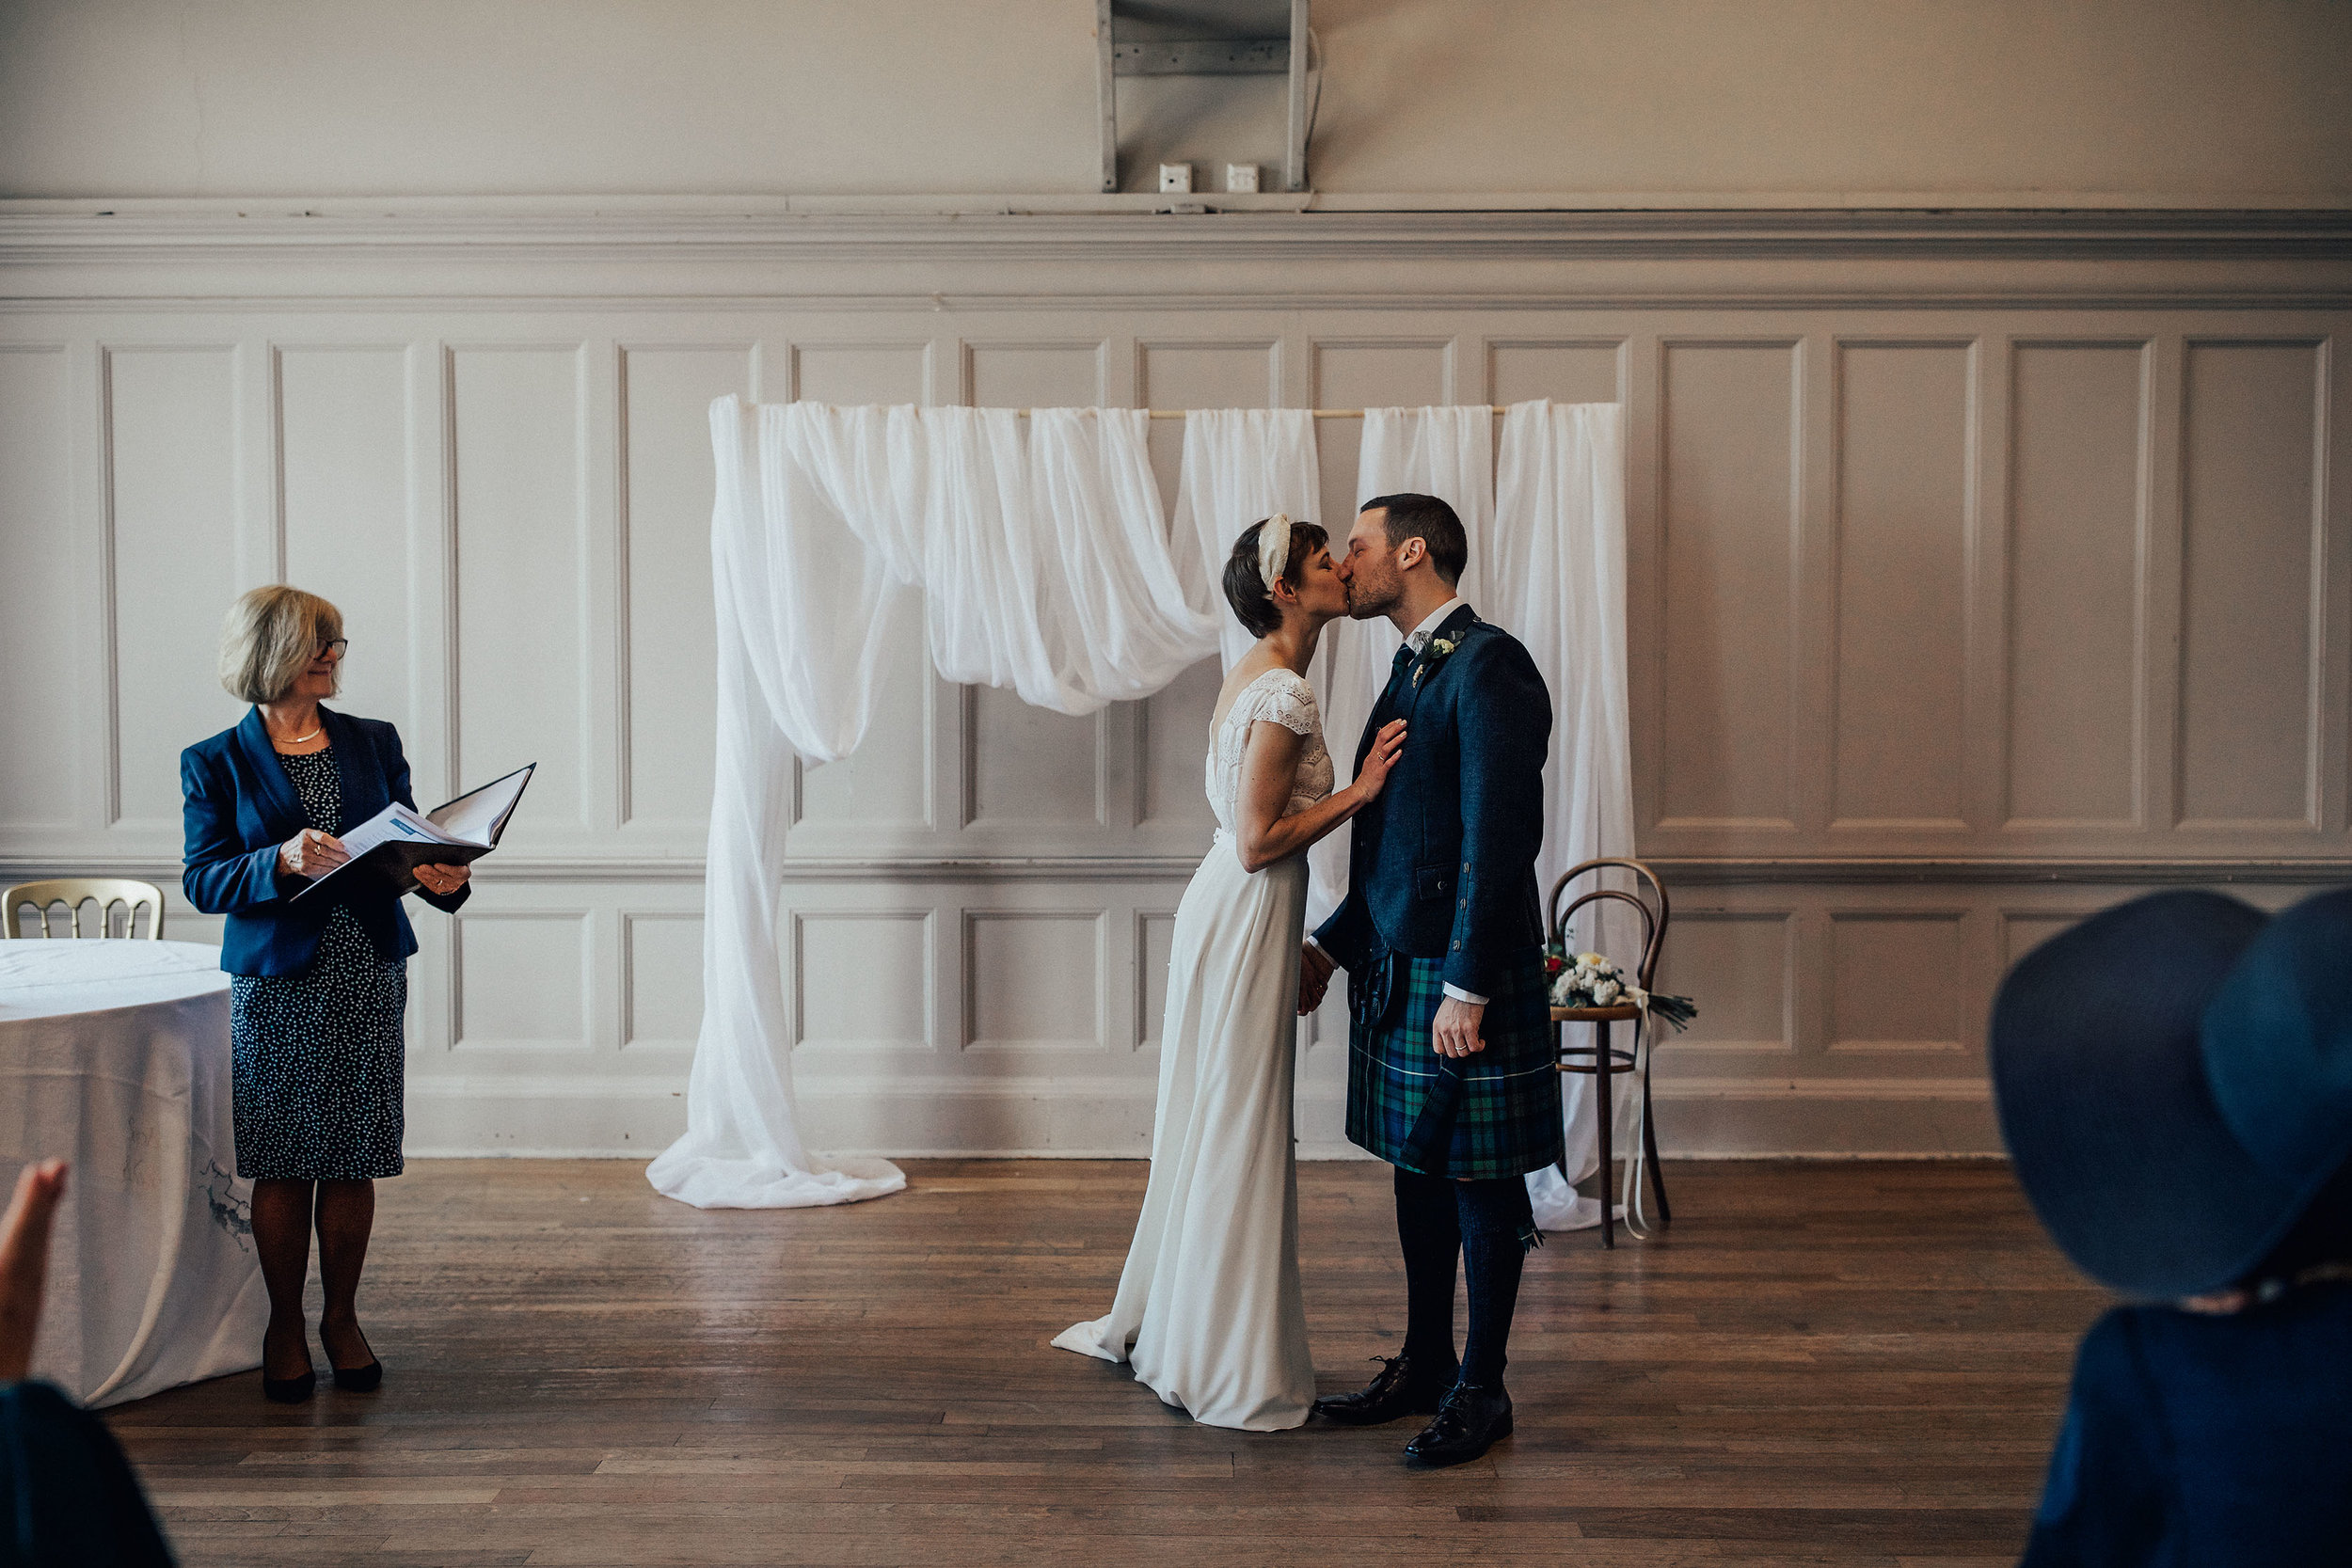 TIMBERYARD_EDINBURGH_WEDDING_PJ_PHILLIPS_PHOTOGRAPHY_83.jpg